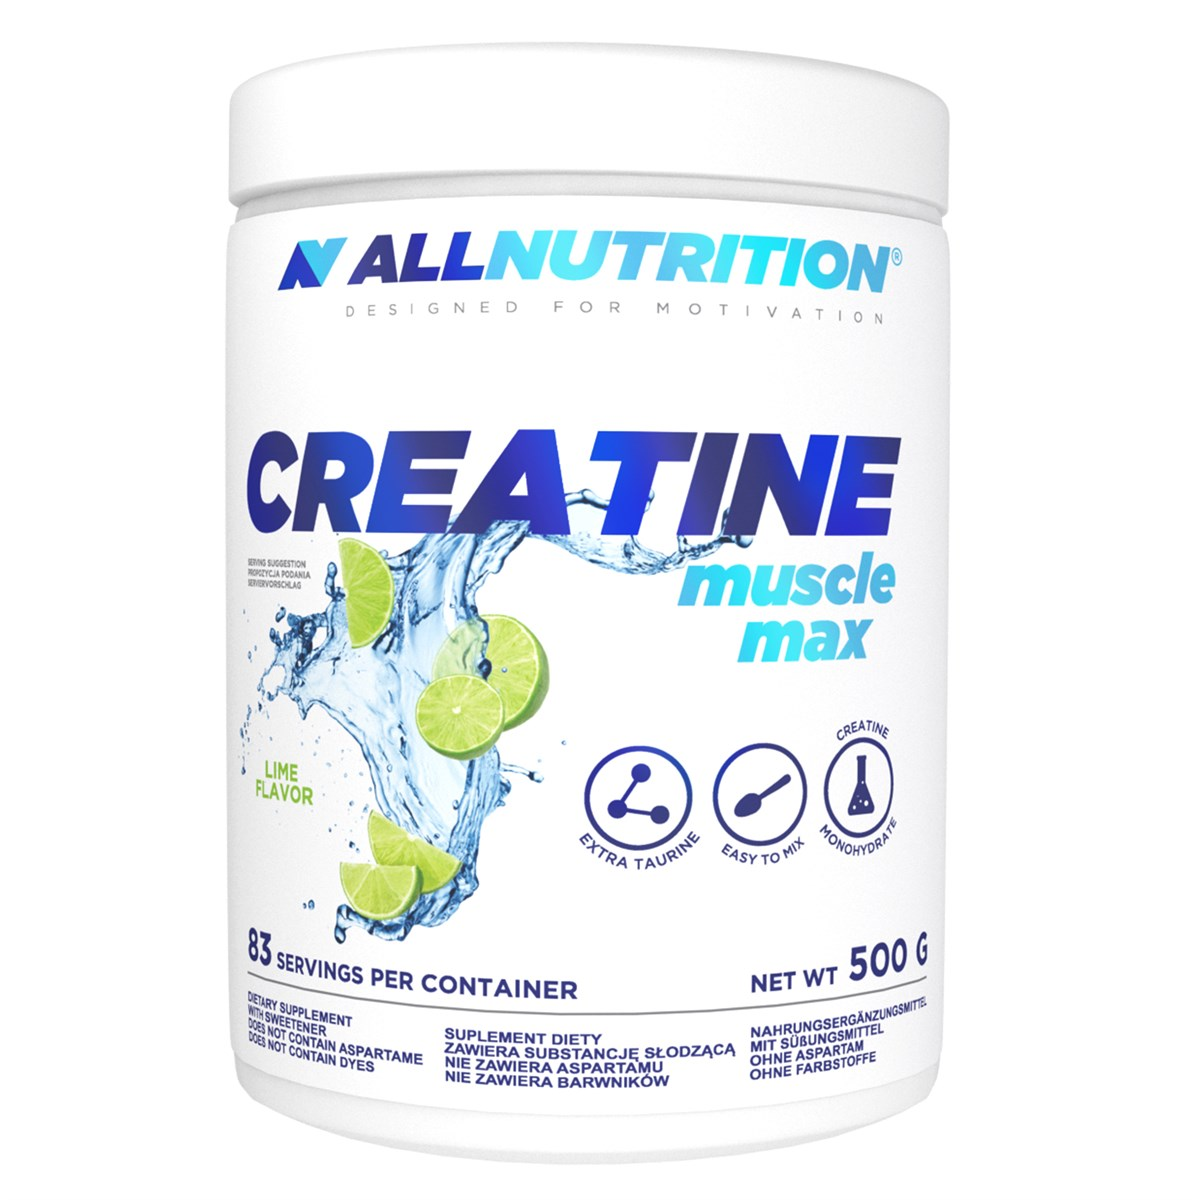 Créatine Muscle Max Allnutrition